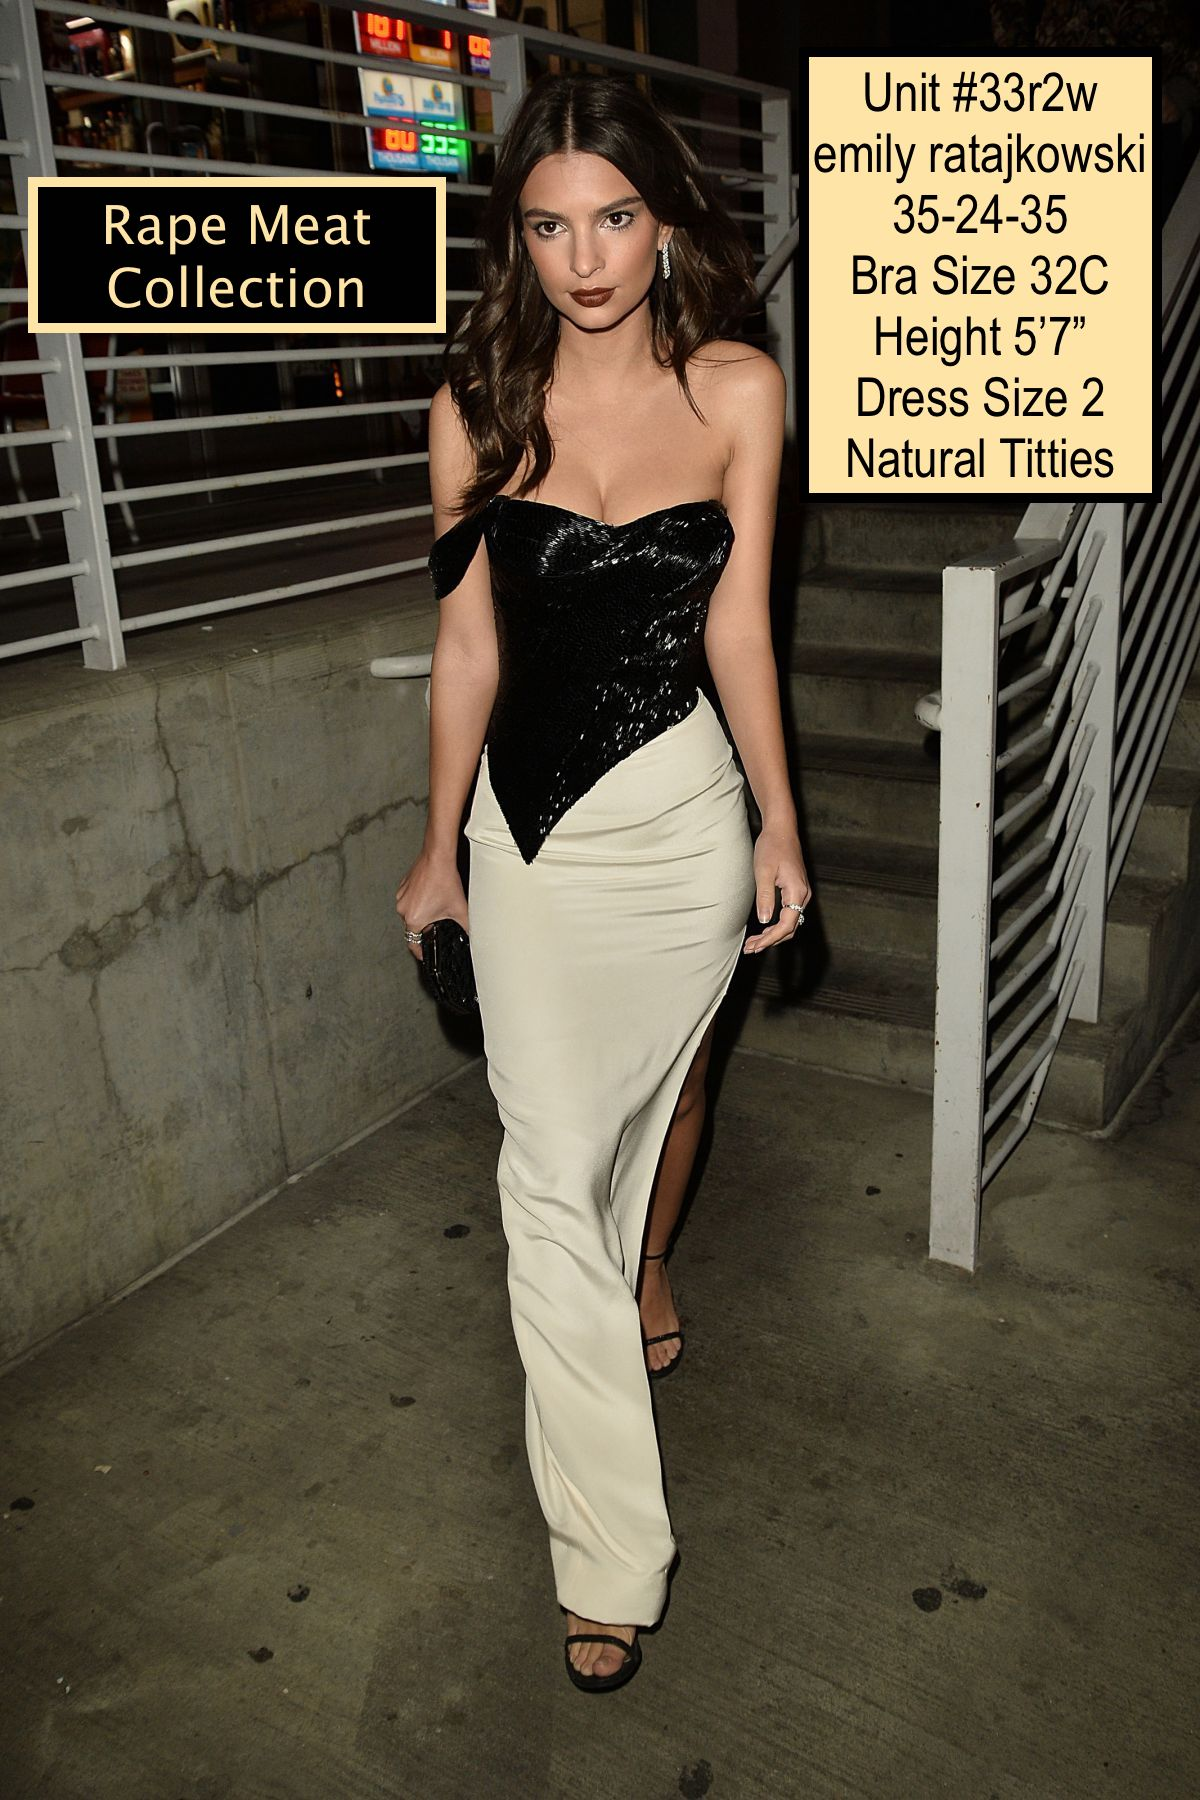 _emily-ratajkowski-night-out-in-west-hollywood-01-27-2017_8.jpg